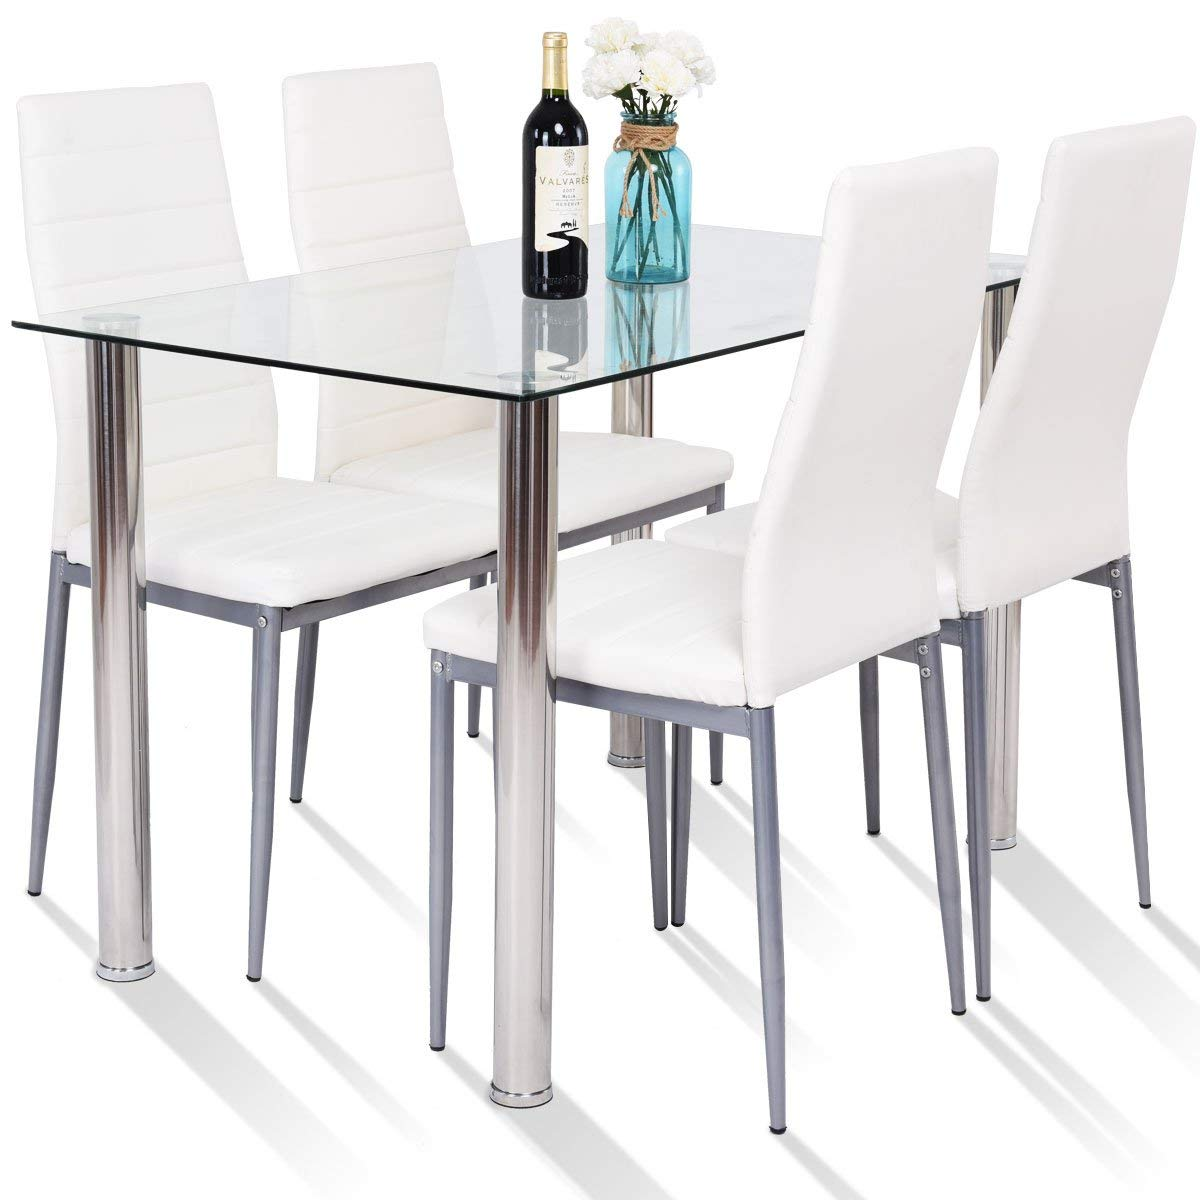 Tangkula 5 PCS Dining Table Set Modern Tempered Glass Top and PVC Leather Chair w/4 Chairs Dining Room Kitchen Furniture (White and Silver) by Tangkula